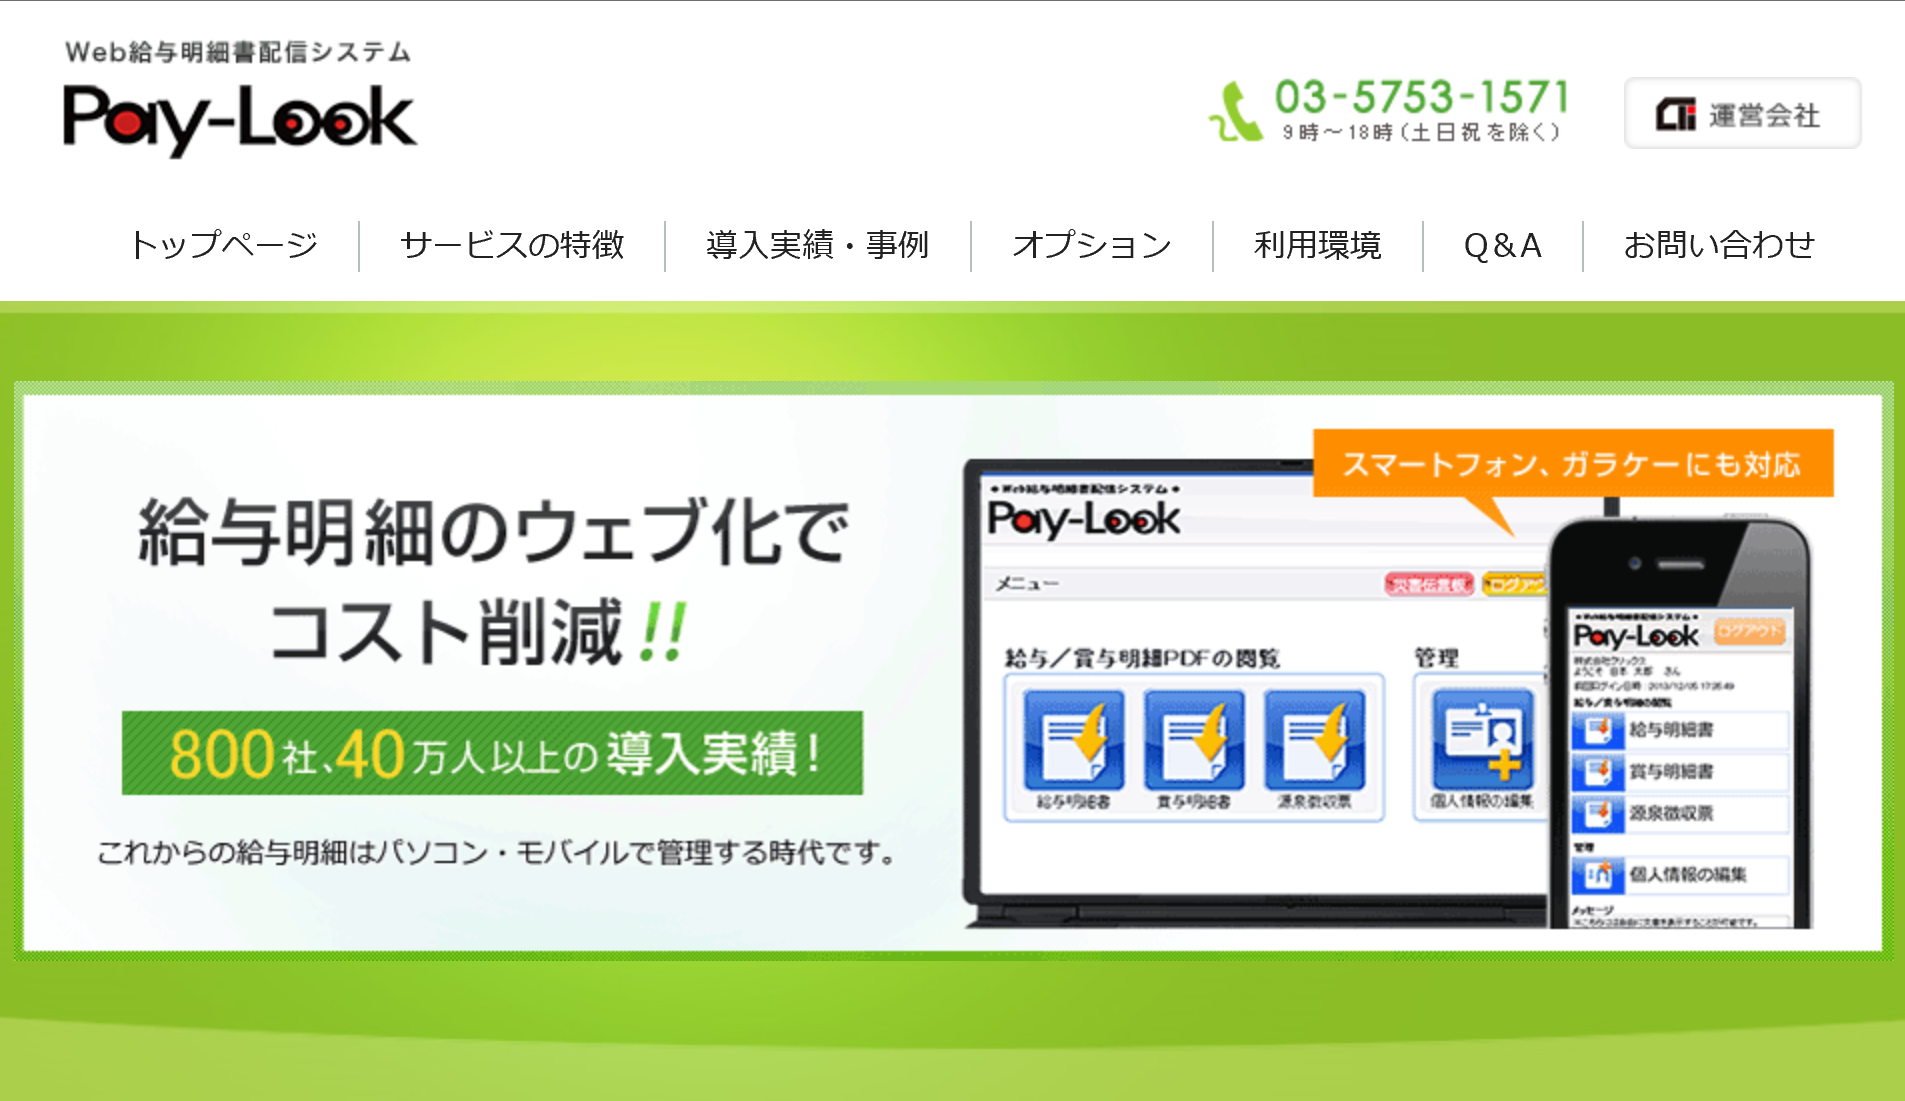 paylook